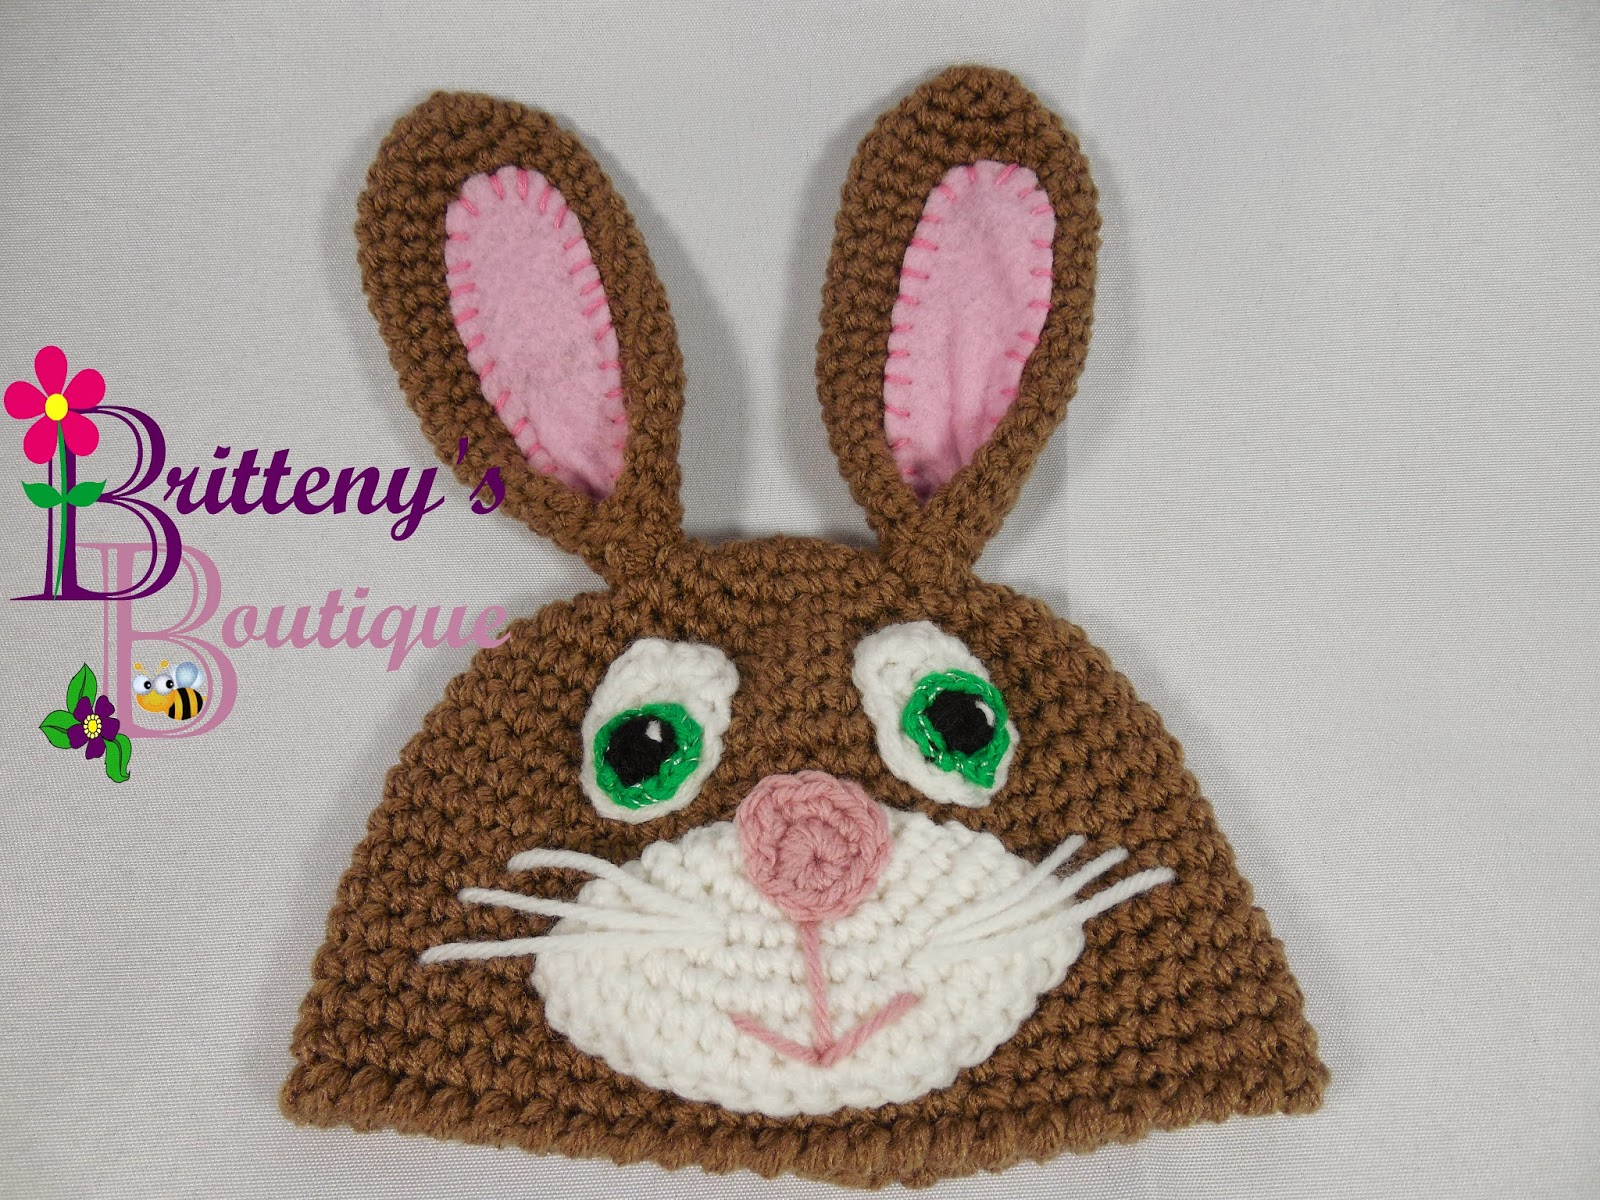 Britteny off the hook bunny rabbit hat crochet pattern free pdf bunny rabbit hat crochet pattern free pdf bankloansurffo Choice Image